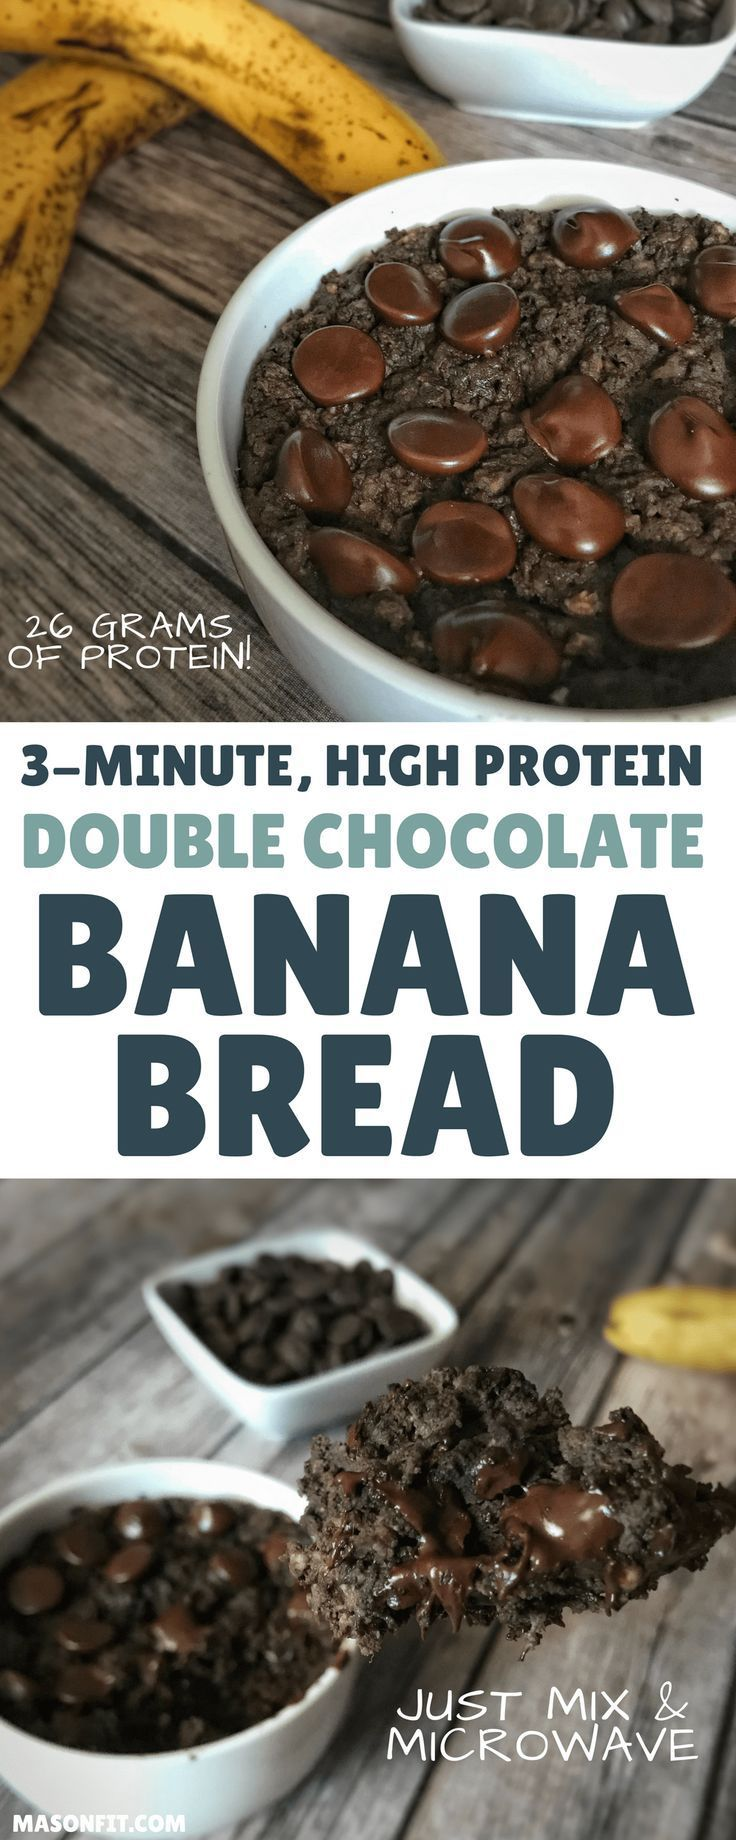 This high protein banana bread recipe puts a double chocolate spin on classic banana bread and packs 26 grams of protein into one microwaveable mug cake-style banana bread loaf. With a short ingredient list and under 2-minute cook time, this is perfect fo #proteinmugcakes This high protein banana bread recipe puts a double chocolate spin on classic banana bread and packs 26 grams of protein into one microwaveable mug cake-style banana bread loaf. With a short ingredient list and under 2-minute c #proteinmugcakes